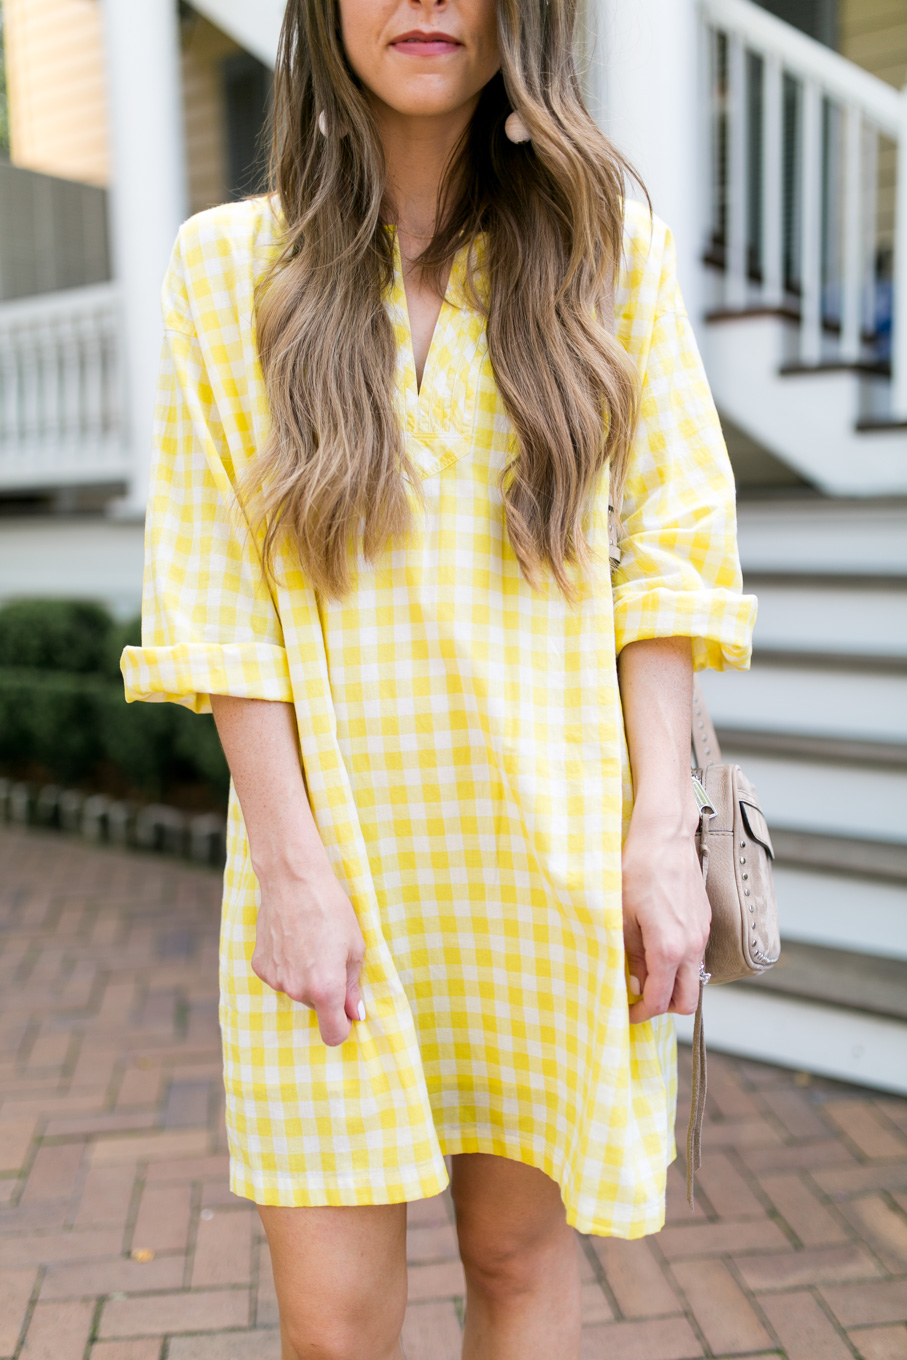 Daryl-Ann Denner wears Madewell yellow gingham dress and Soludos Lemon espadrilles